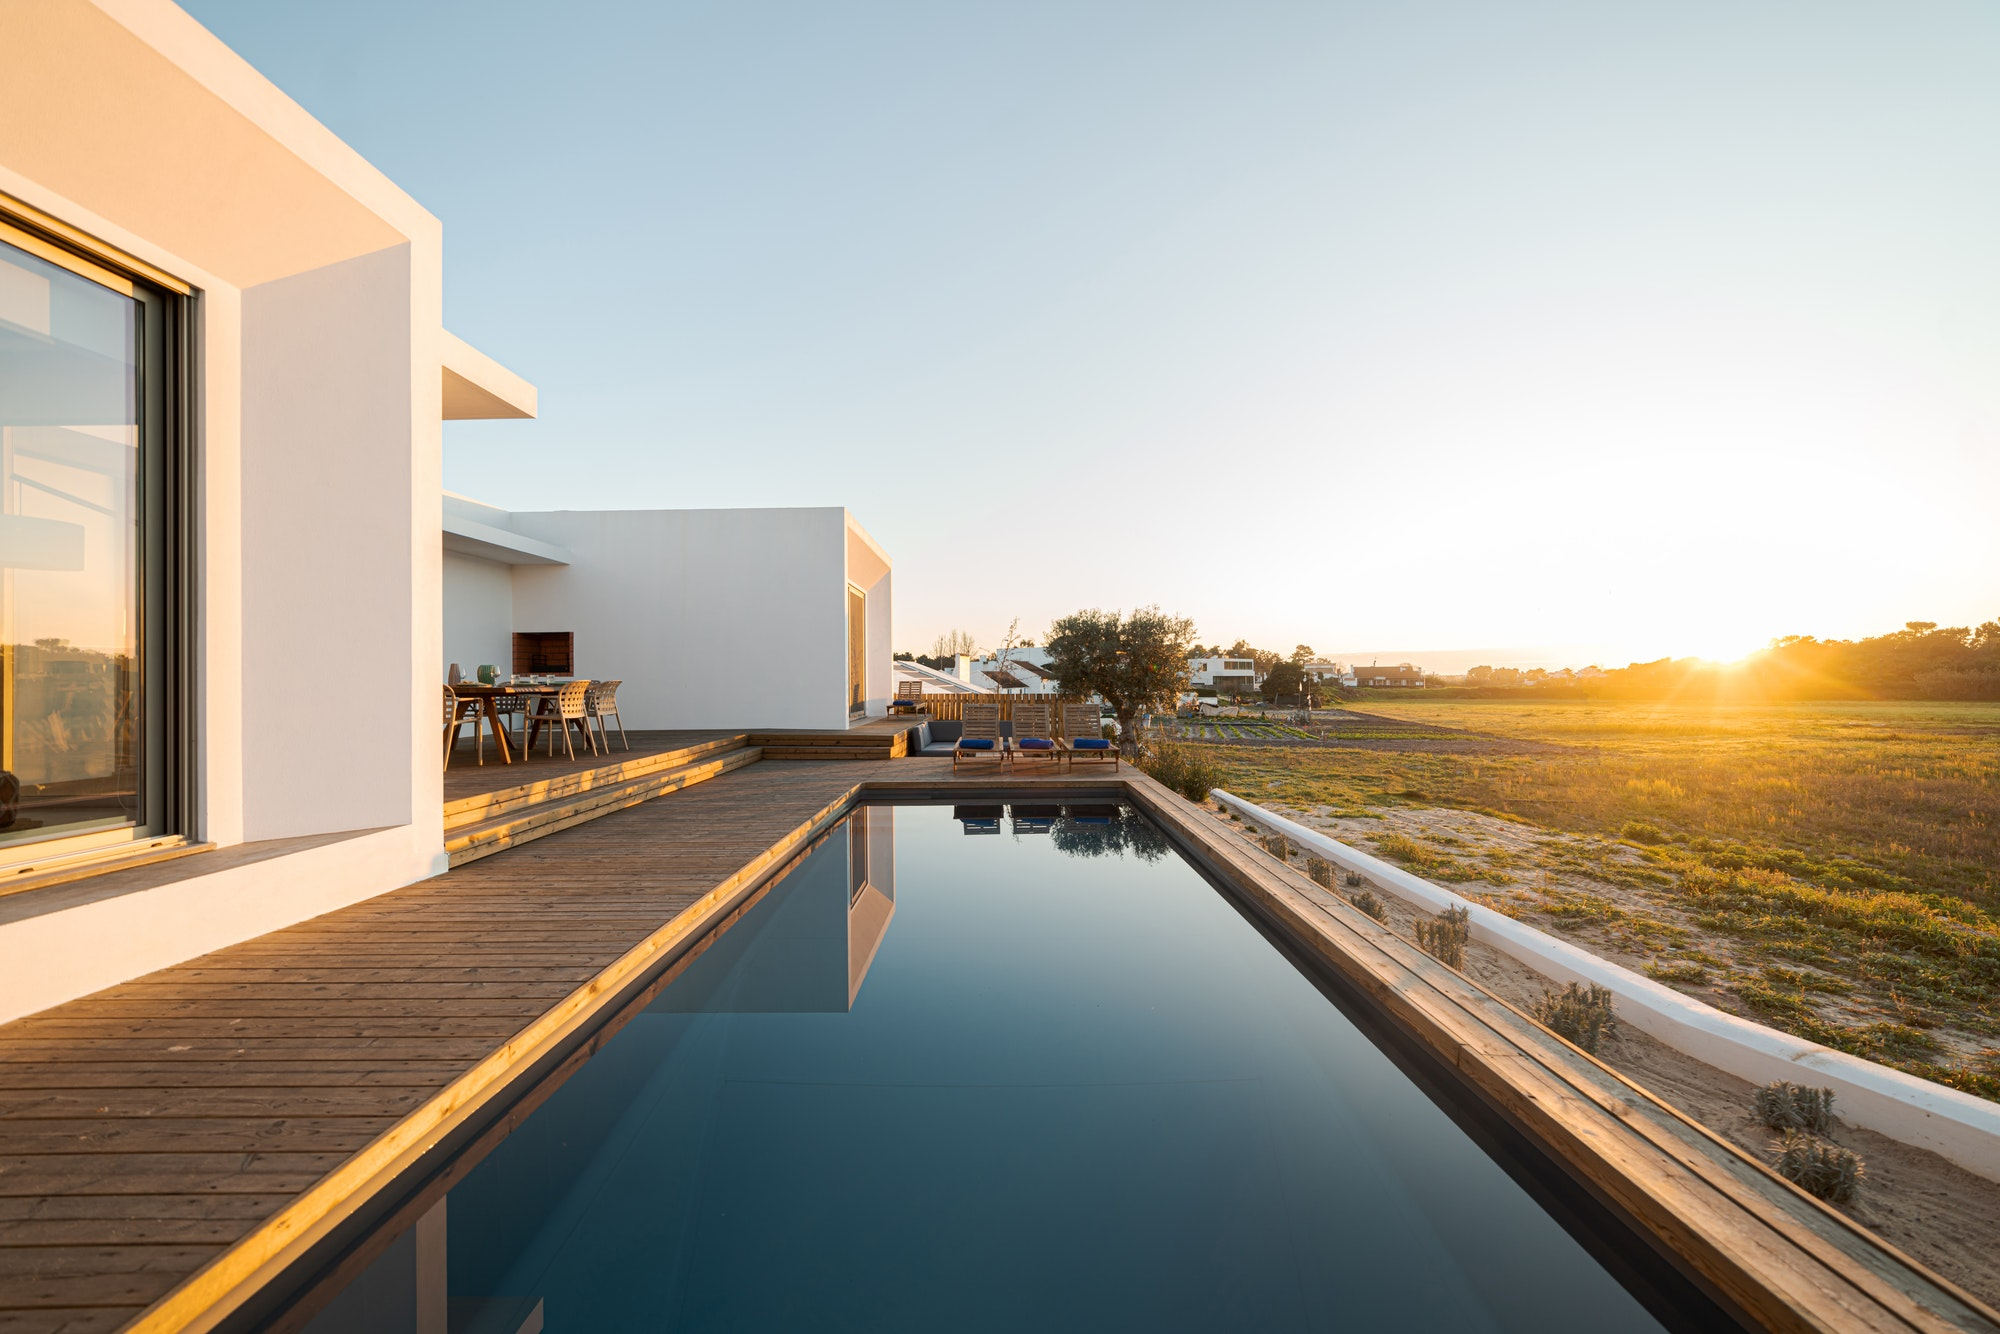 Modern villa with pool and deck